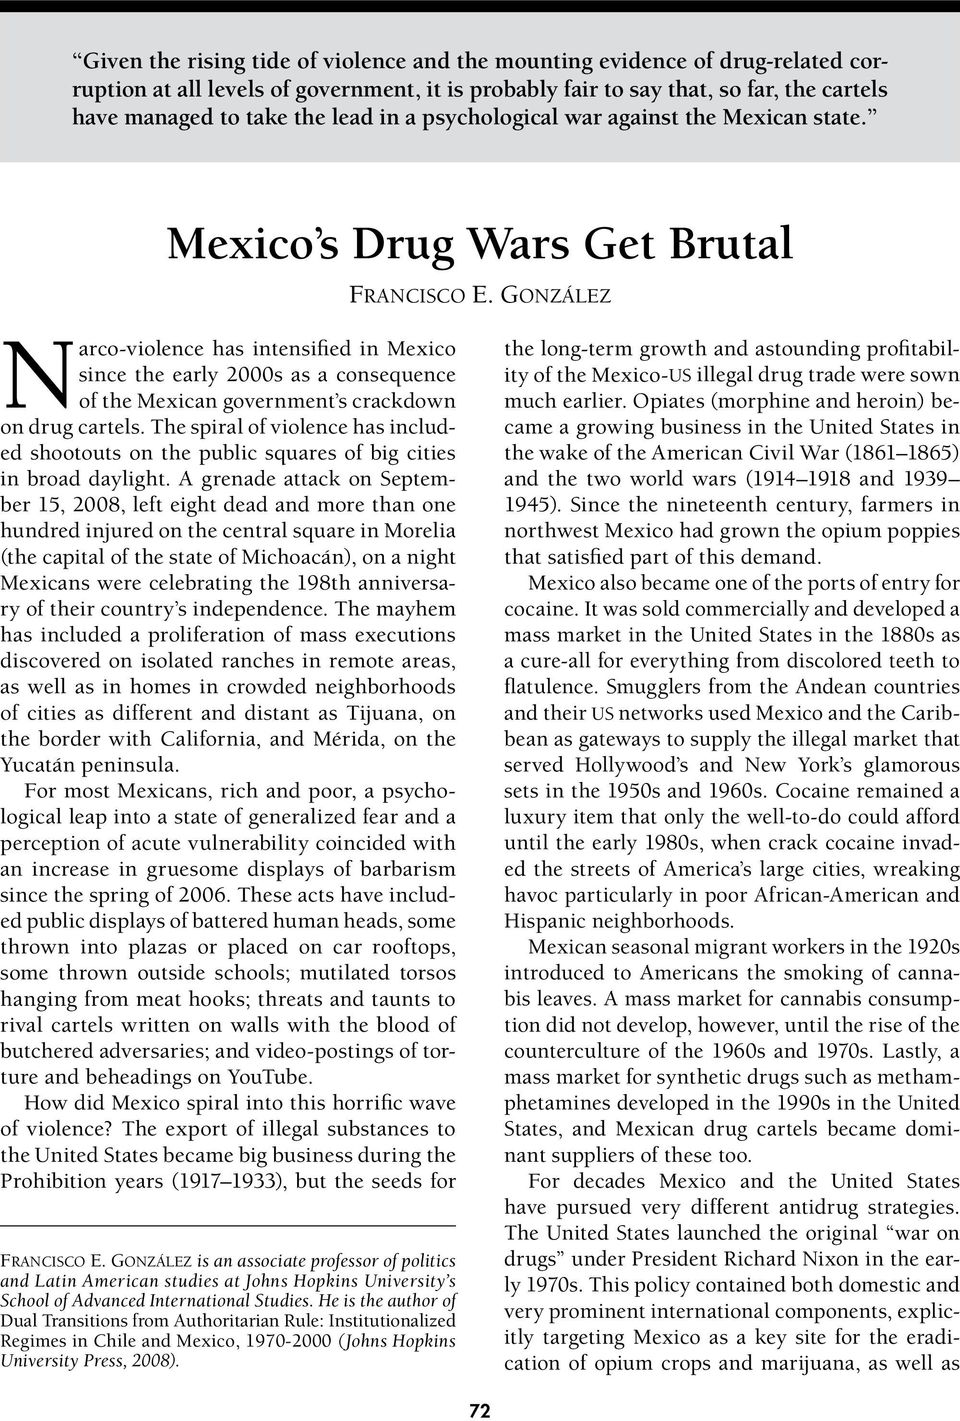 González Narco-violence has intensified in Mexico since the early 2000s as a consequence of the Mexican government s crackdown on drug cartels.